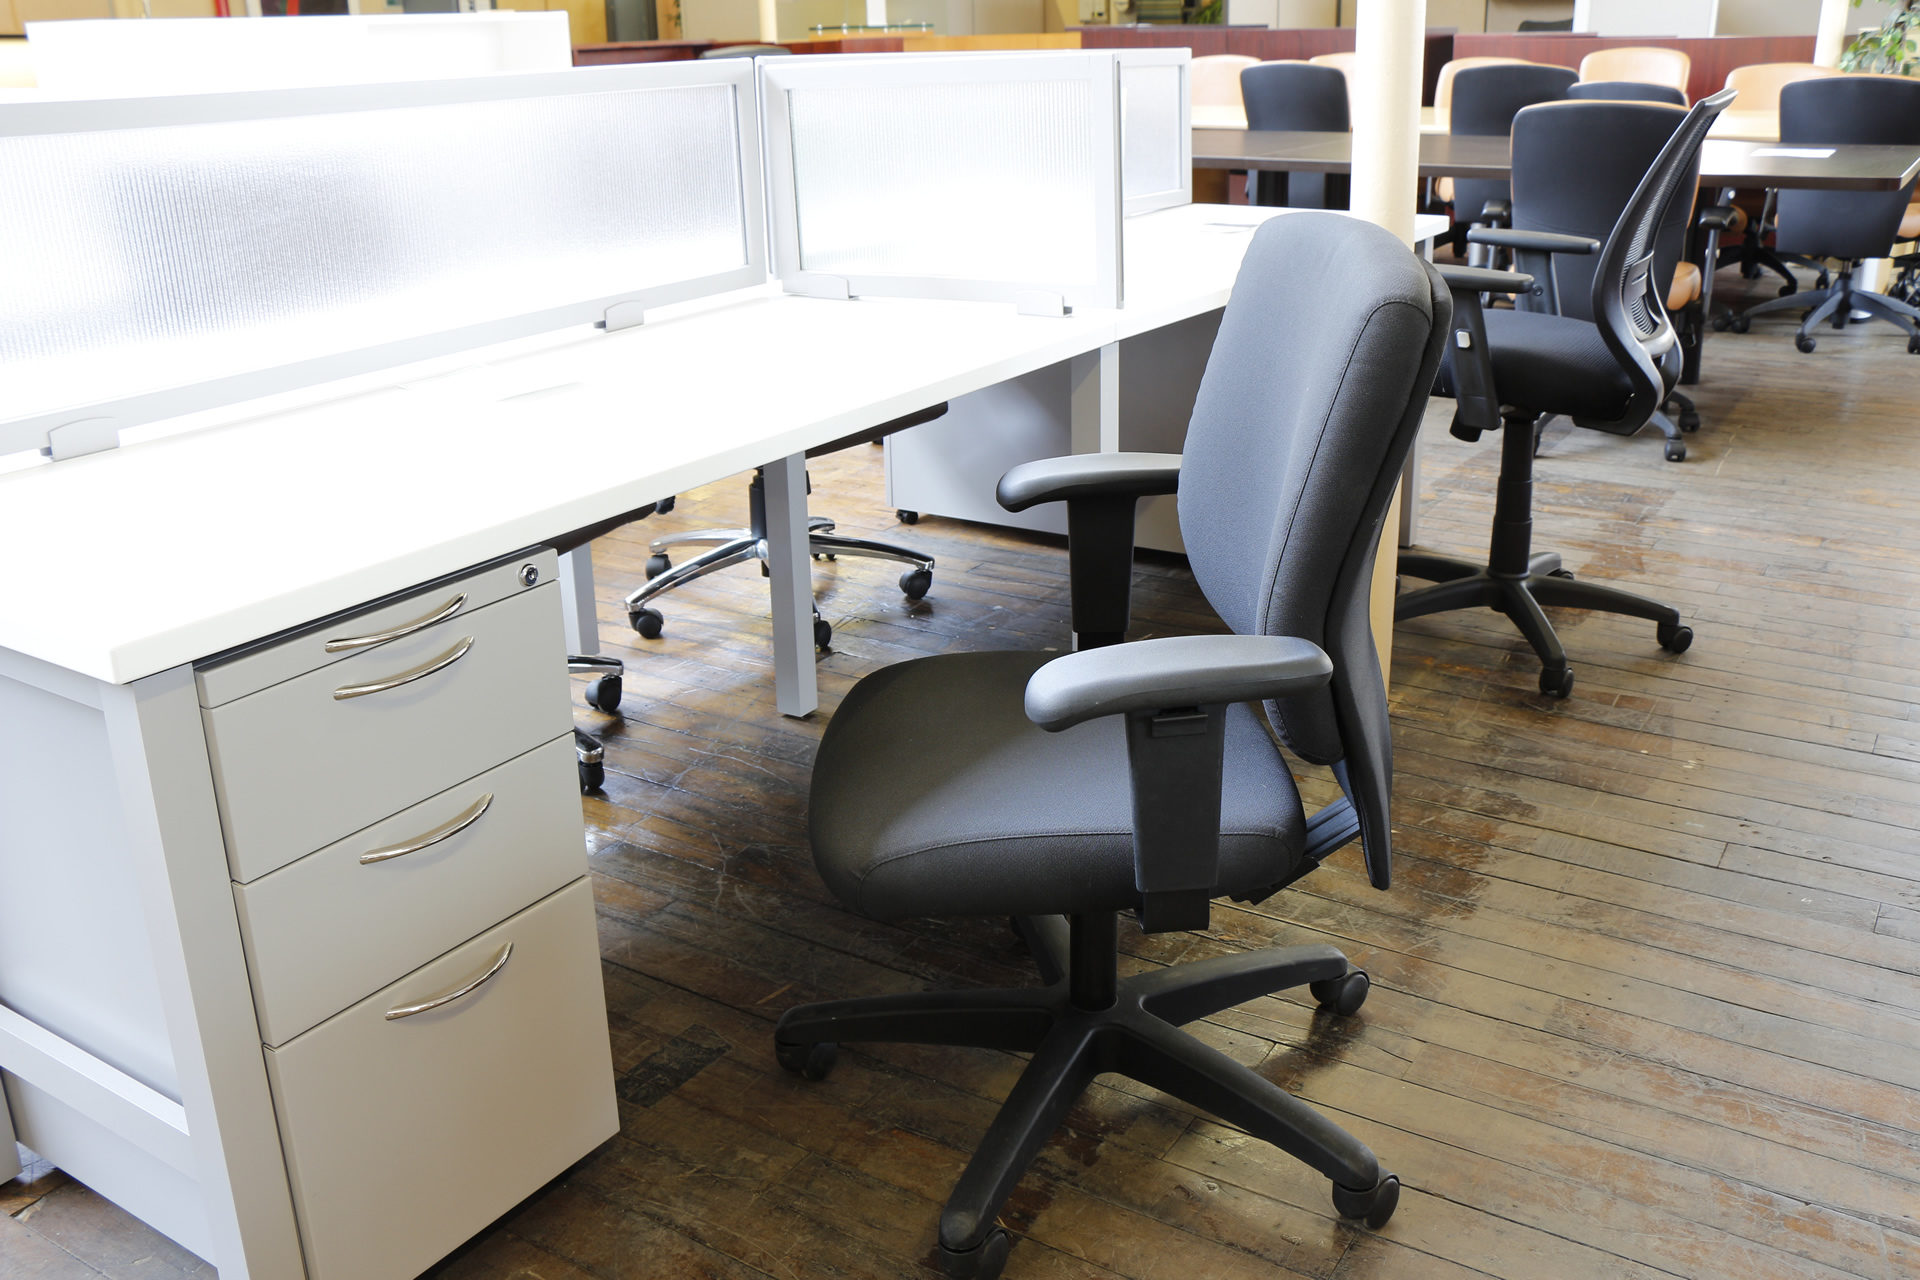 peartreeofficefurniture_peartreeofficefurniture_mg_4422.jpg